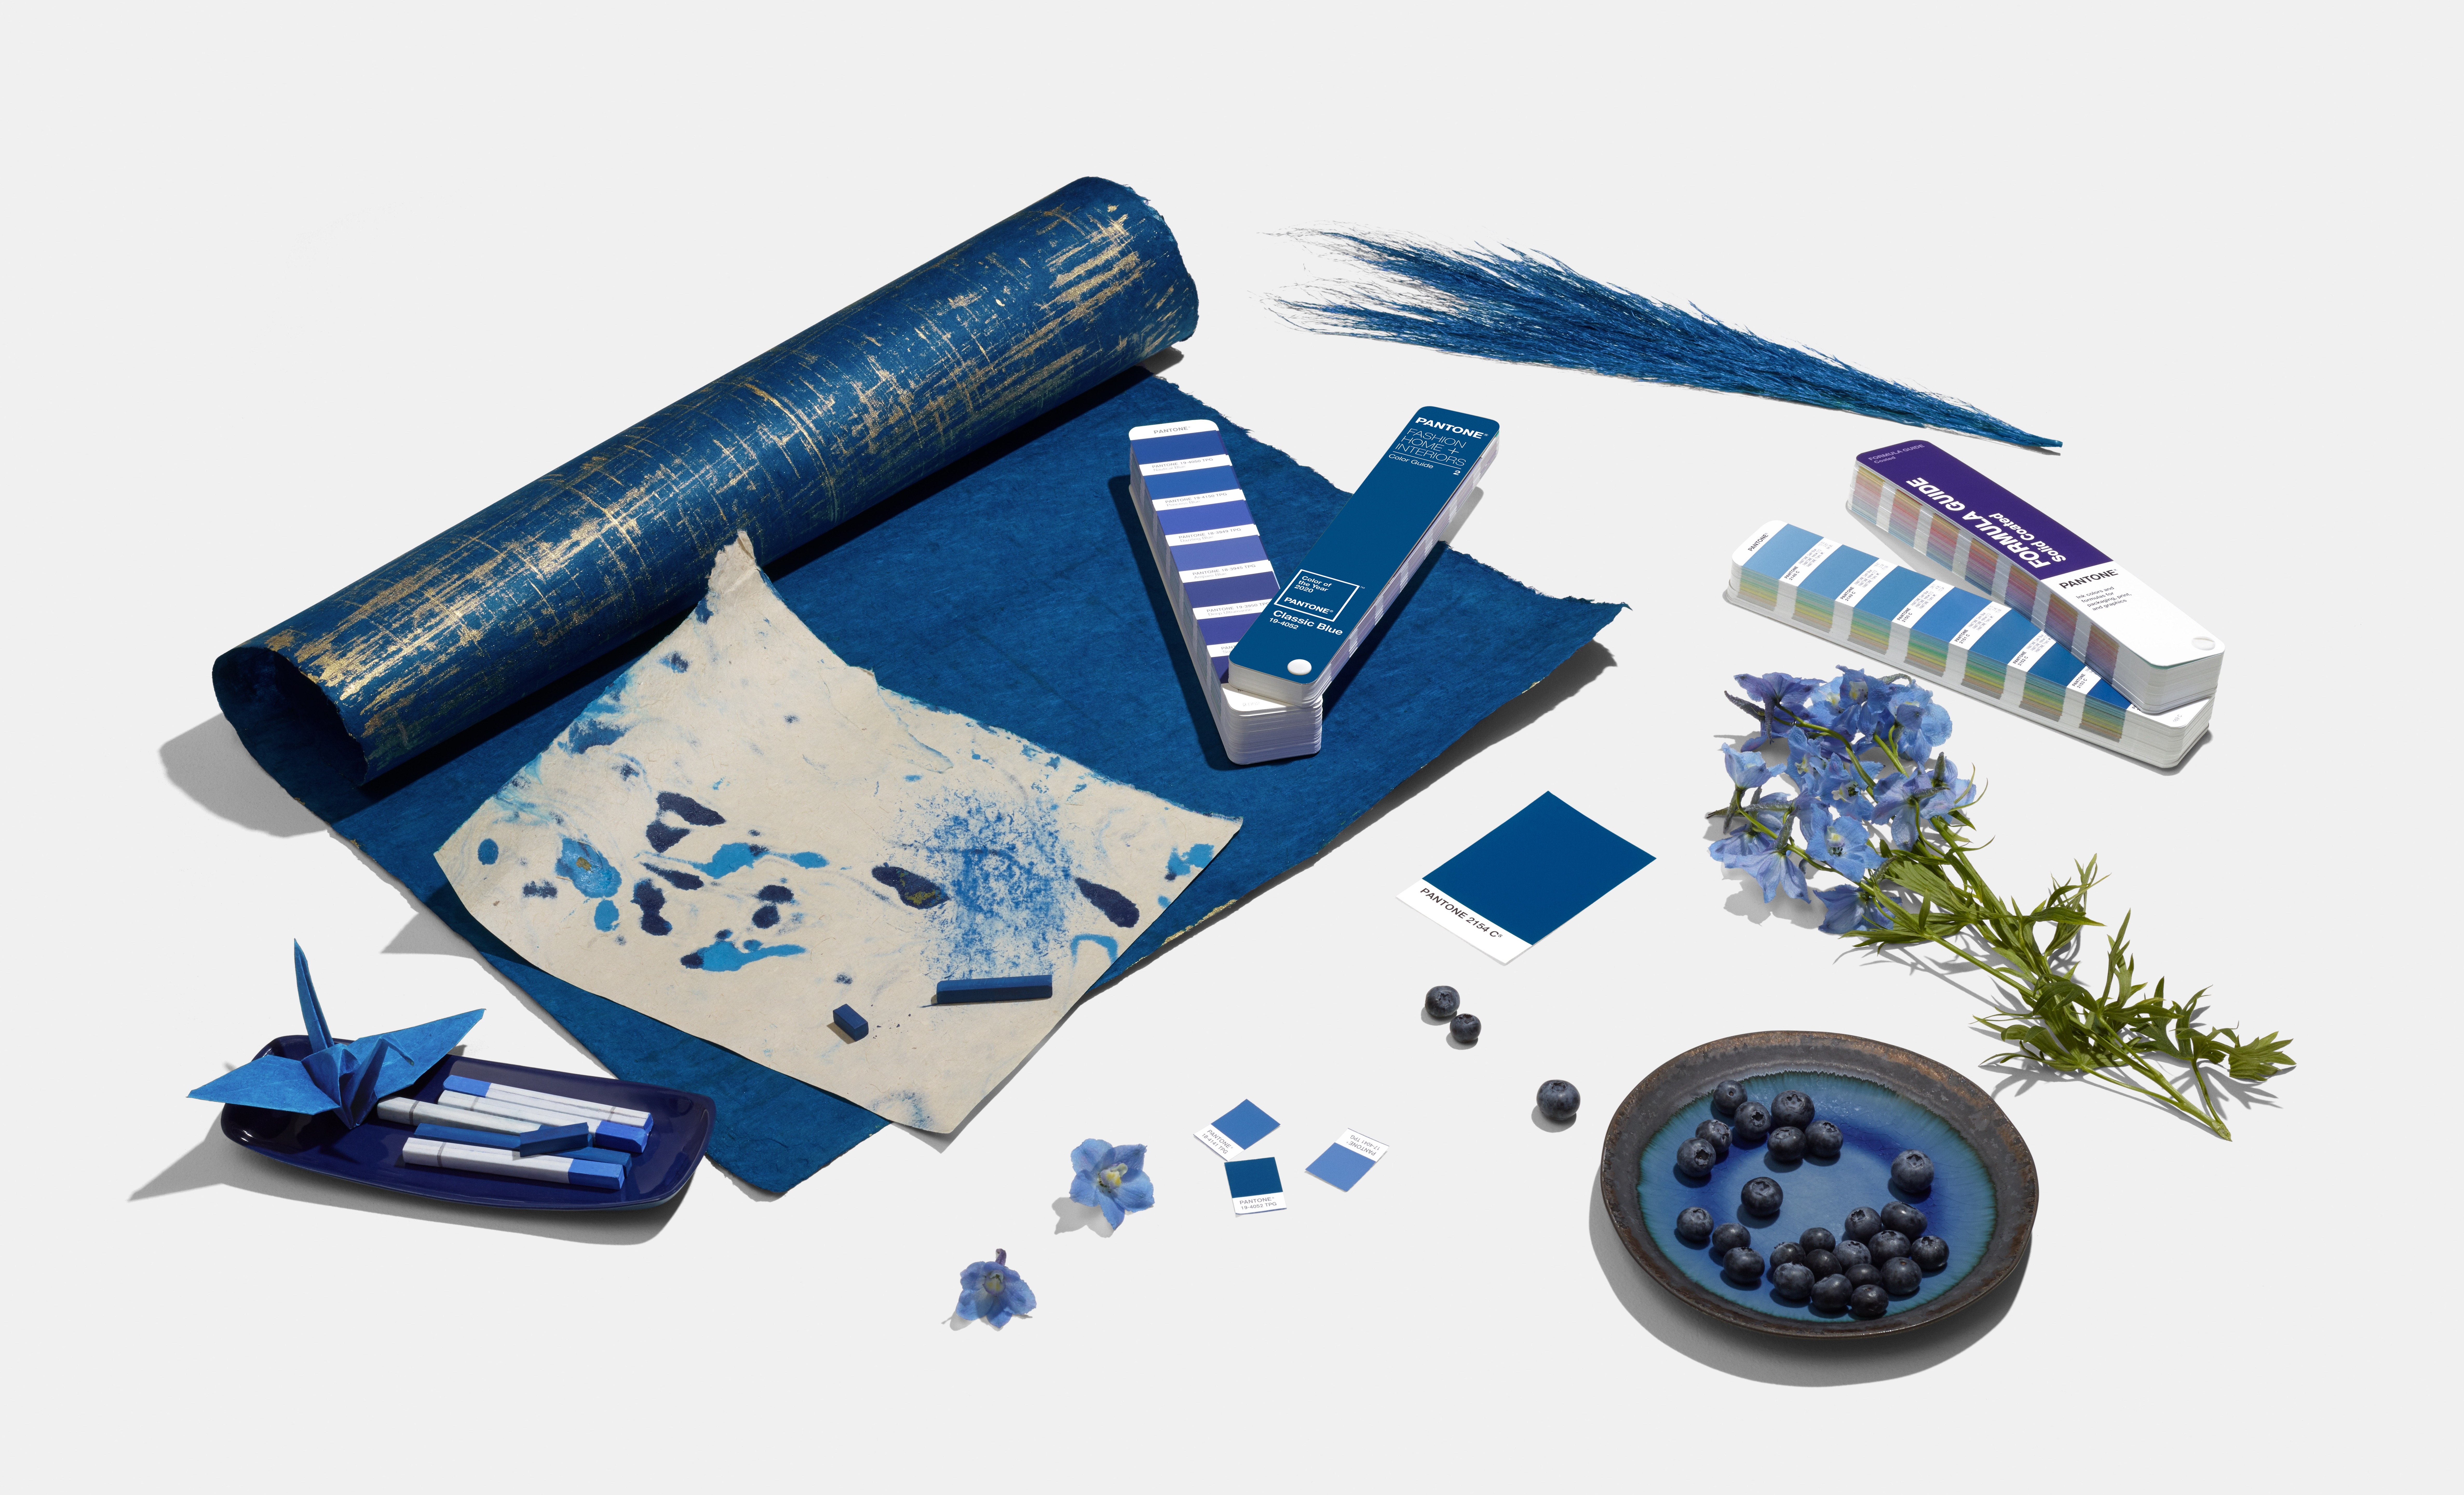 Pantone's 2020 Color of the Year is Classic Blue. Photo by Stephen Baker/Huge.